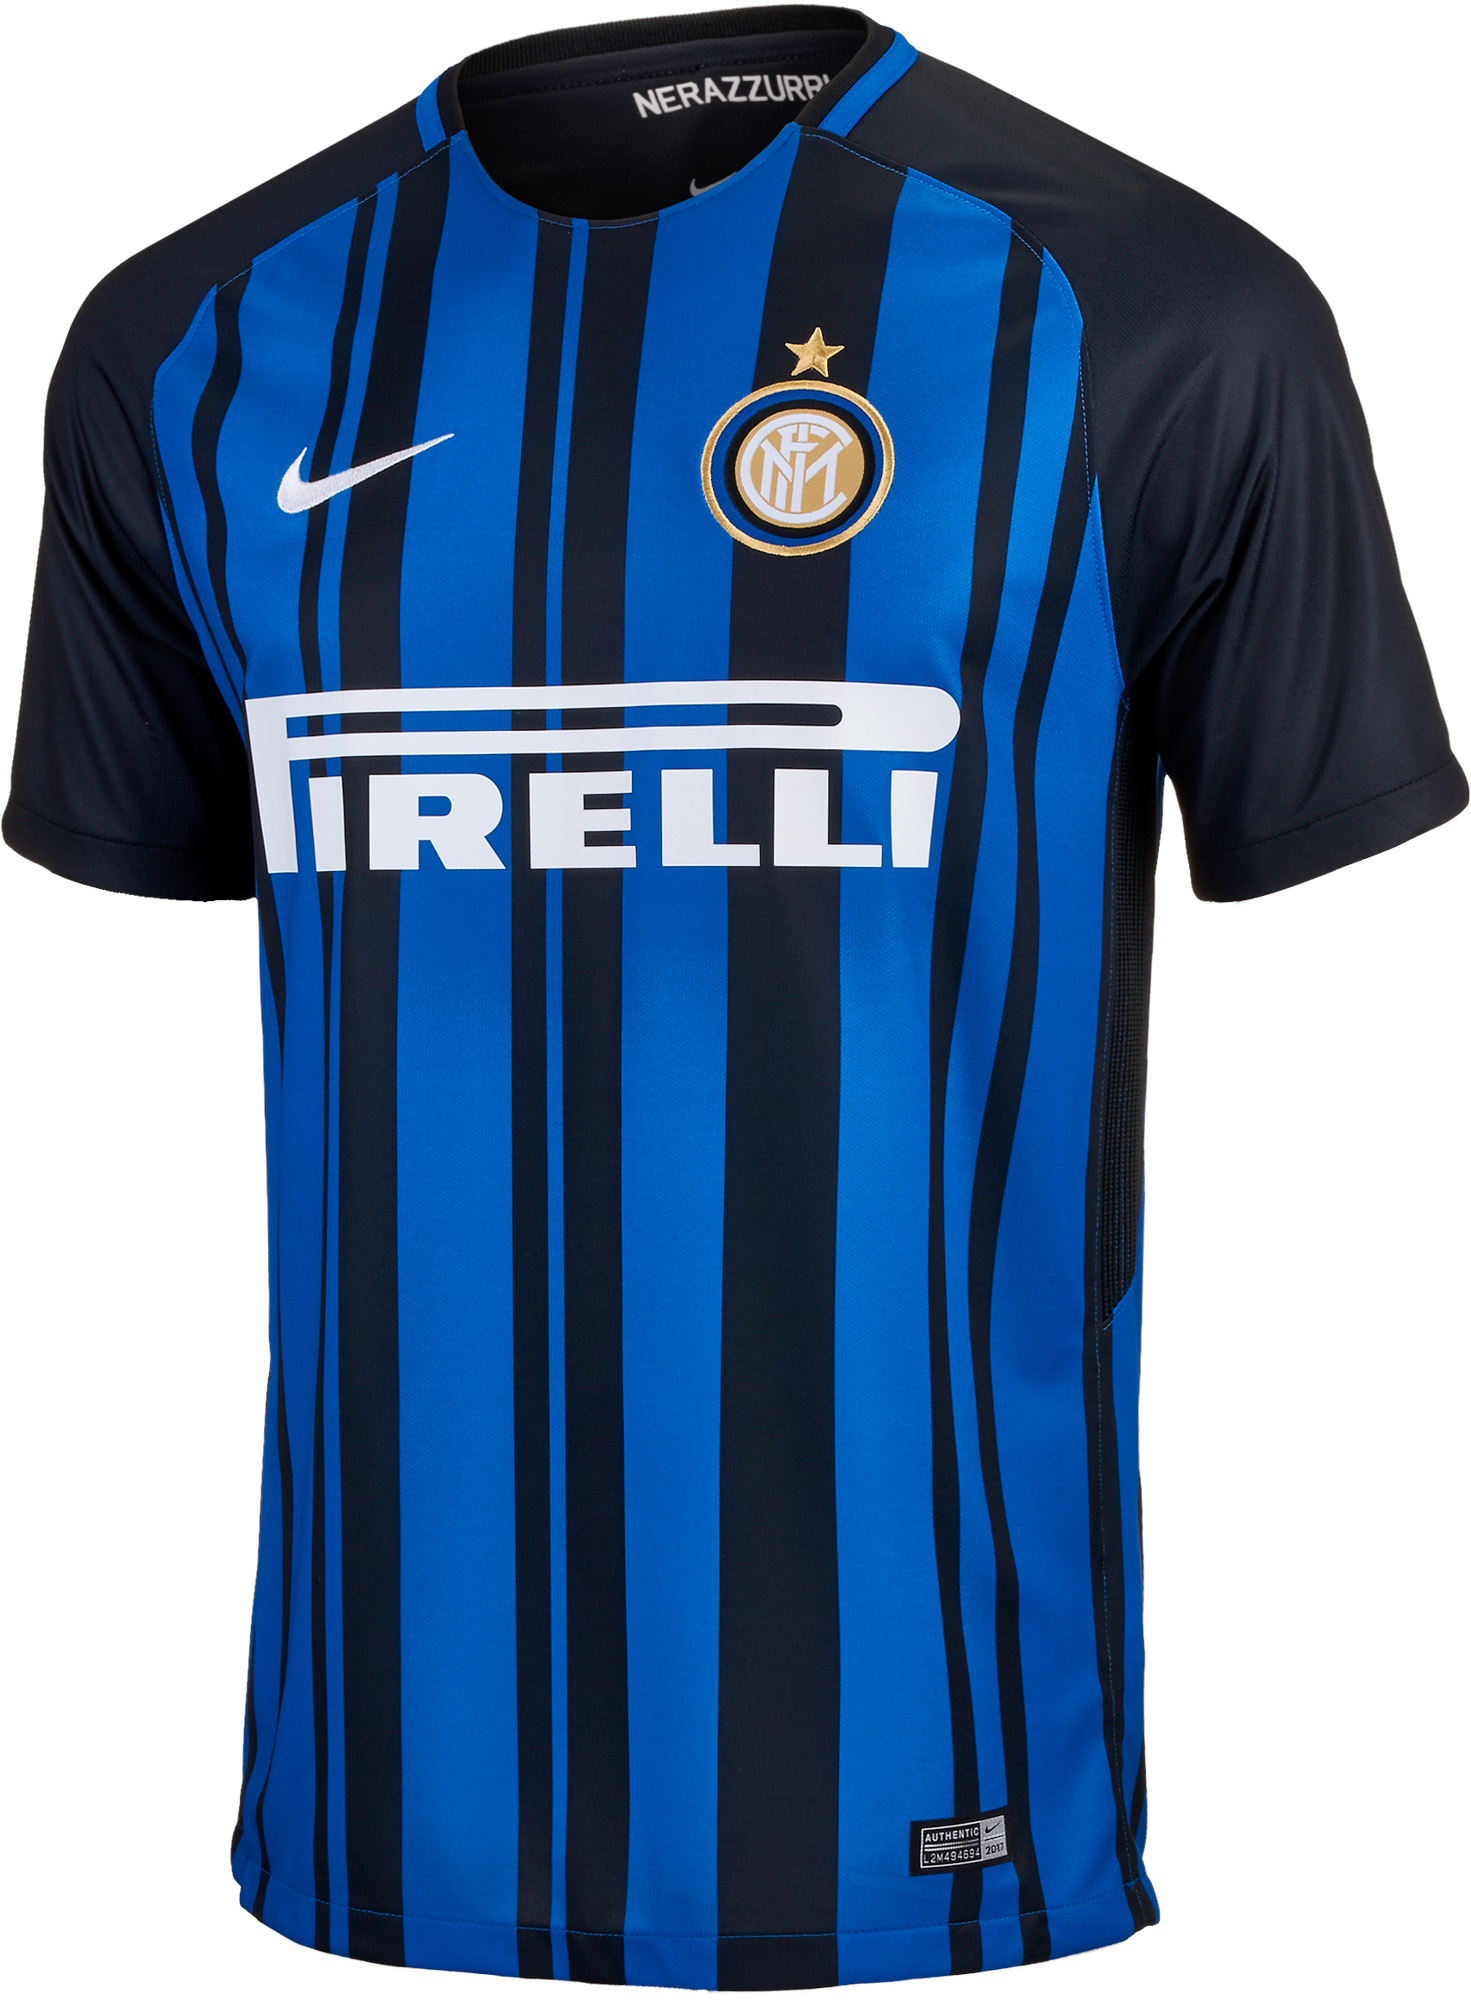 best loved 8a70a 6f390 Nike Inter Milan Home Jersey 2017-18 - Soccer Master